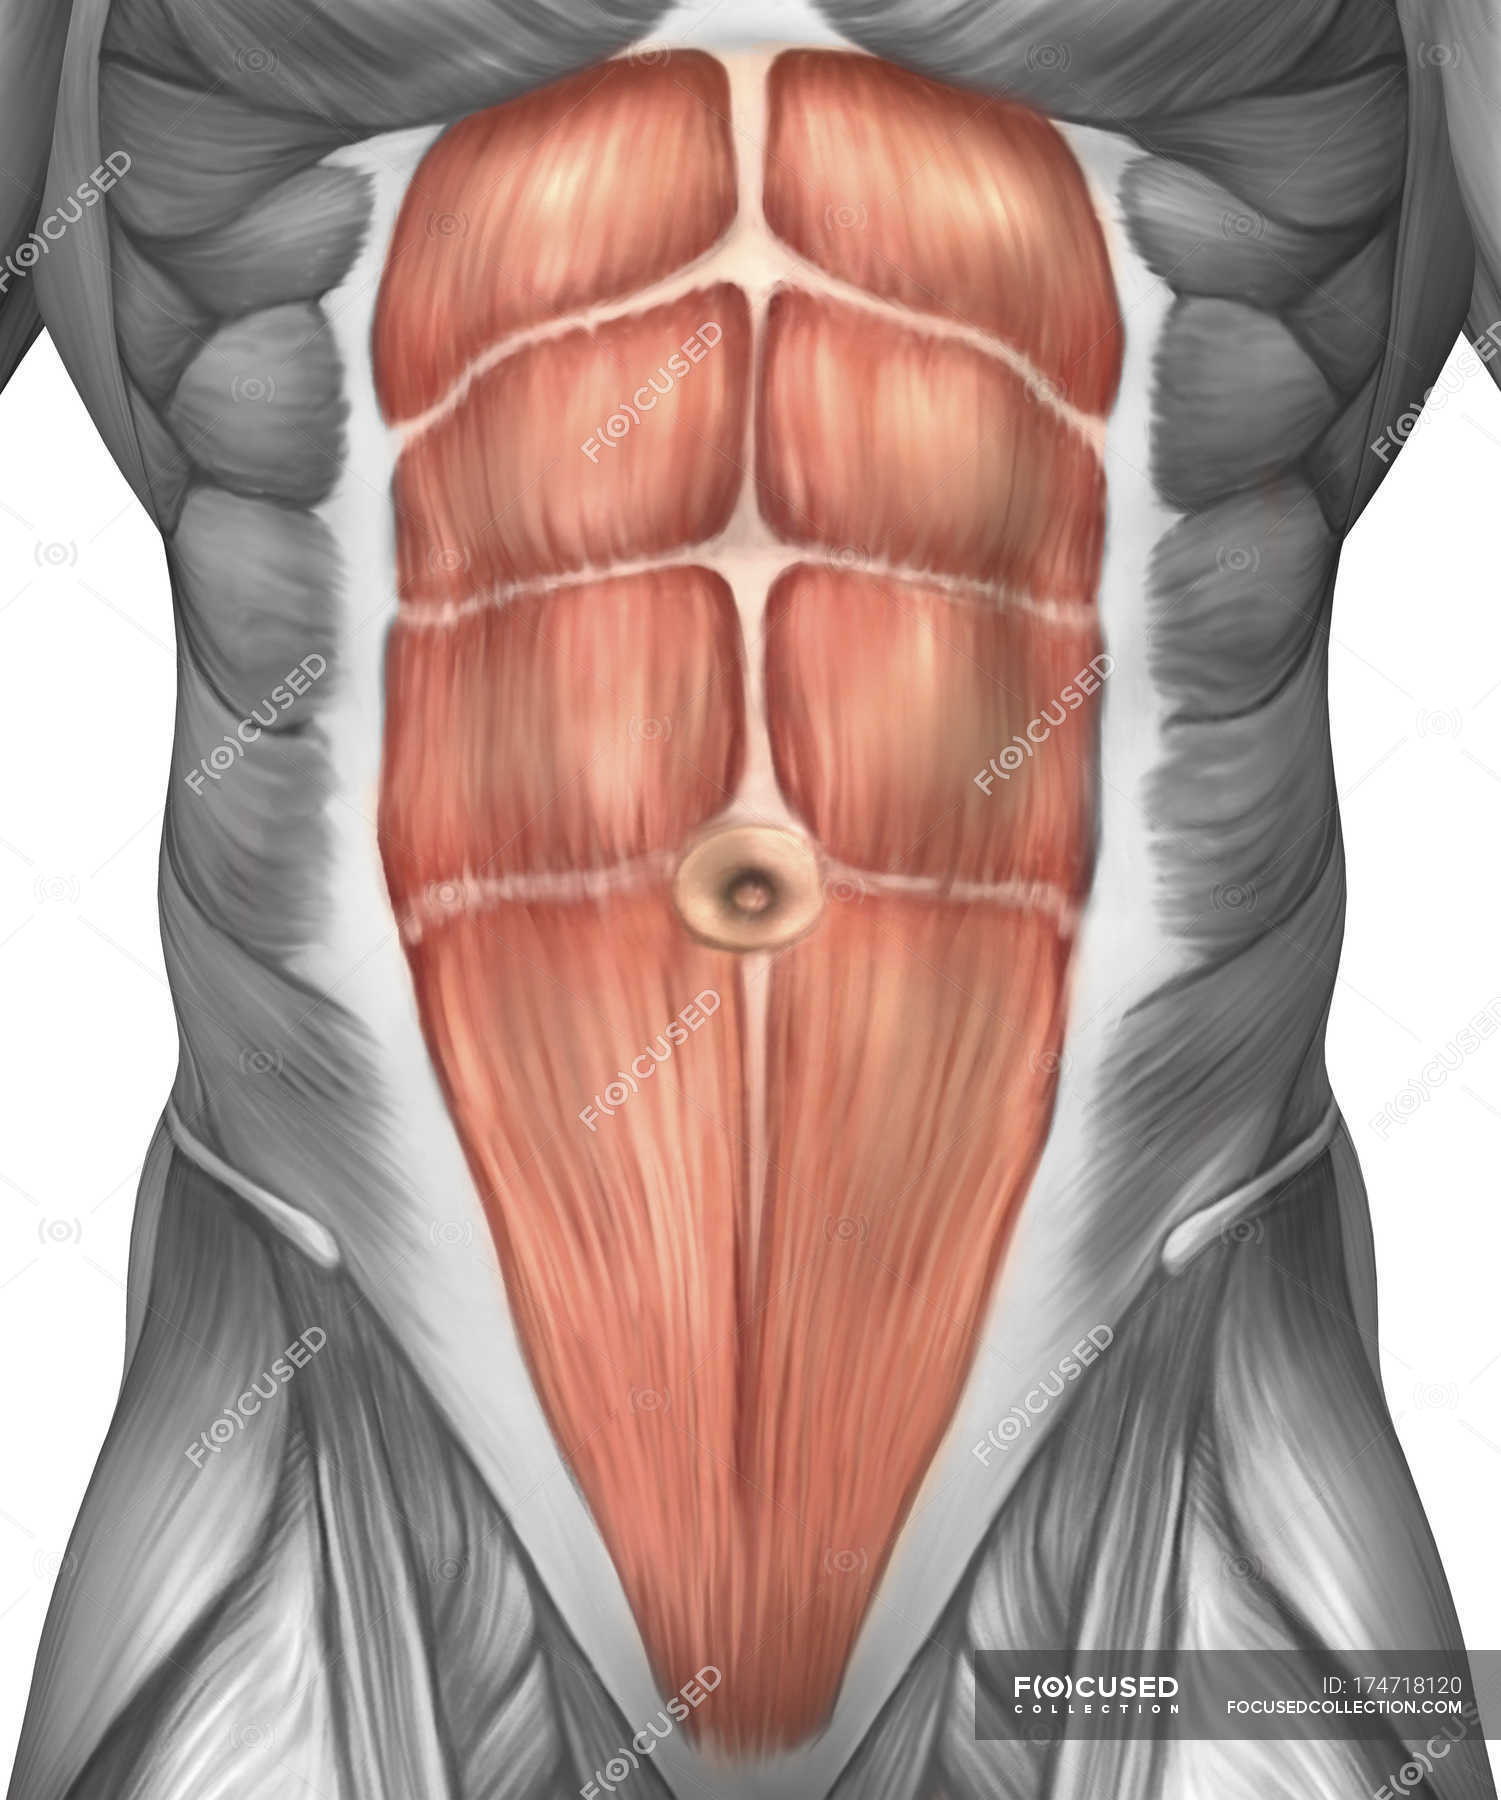 Close Up View Of Male Abdominal Muscles Stock Photo 174718120